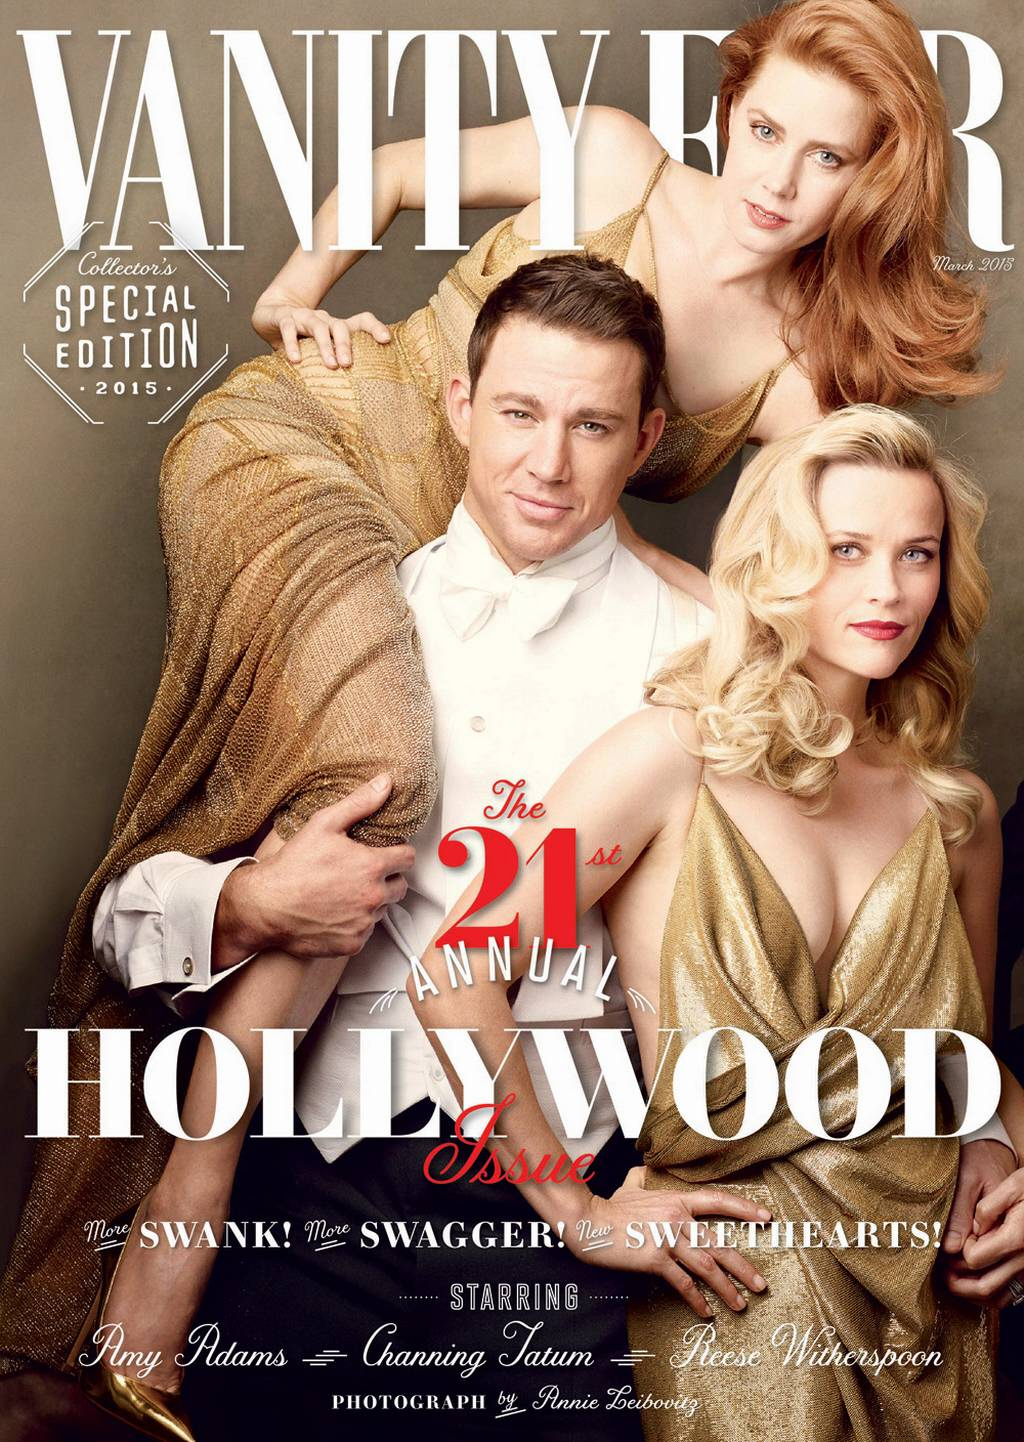 Channing Tatum, Eddie Redmayne + More Shoot Vanity Fair 'Hollywood' Issue Cover Story: See Behind the Scenes